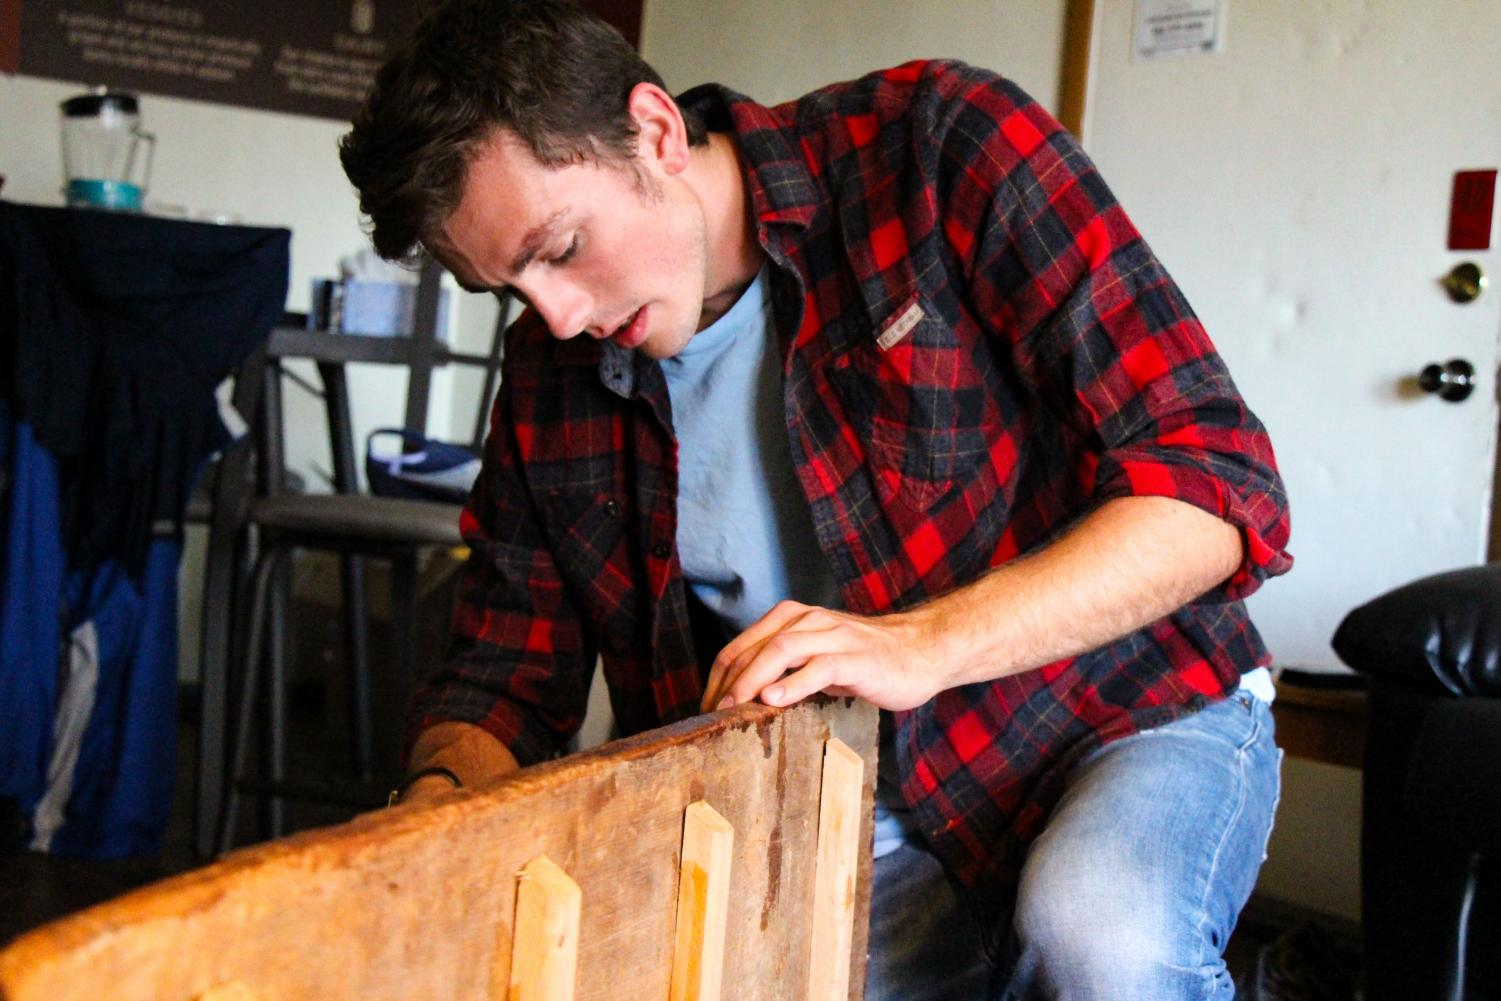 John Bieber, junior in ACES, builds furnitures for friends and family at his apartment on Tuesday. In recent years, he began commission work and uses his apartment on campus as a temporary studio while working on the main pieces at his house in the suburbs.